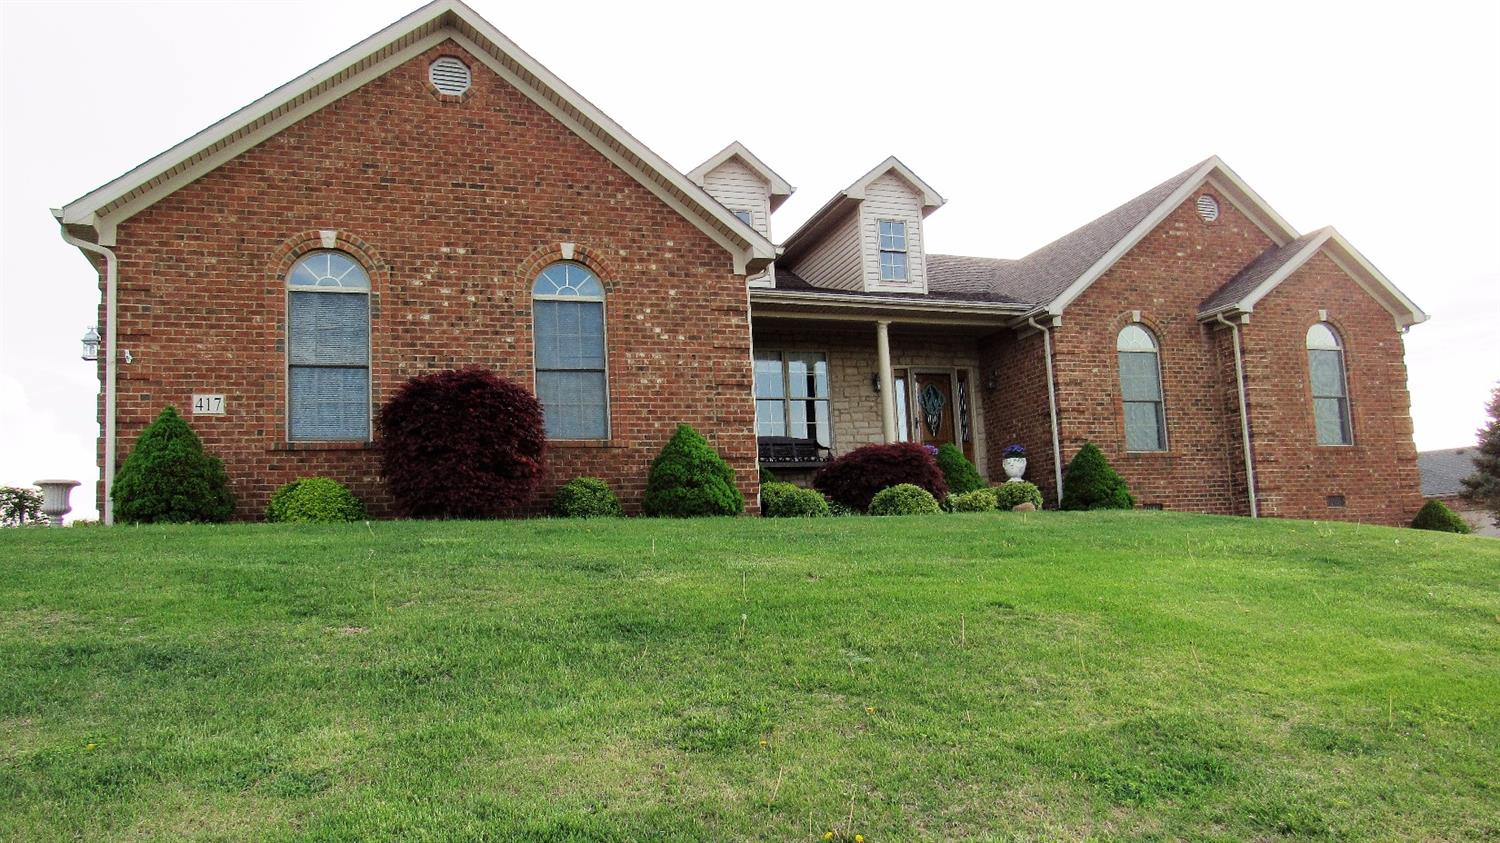 Home For Sale at 410 Bay Hill Cir, Richmond, KY 40475